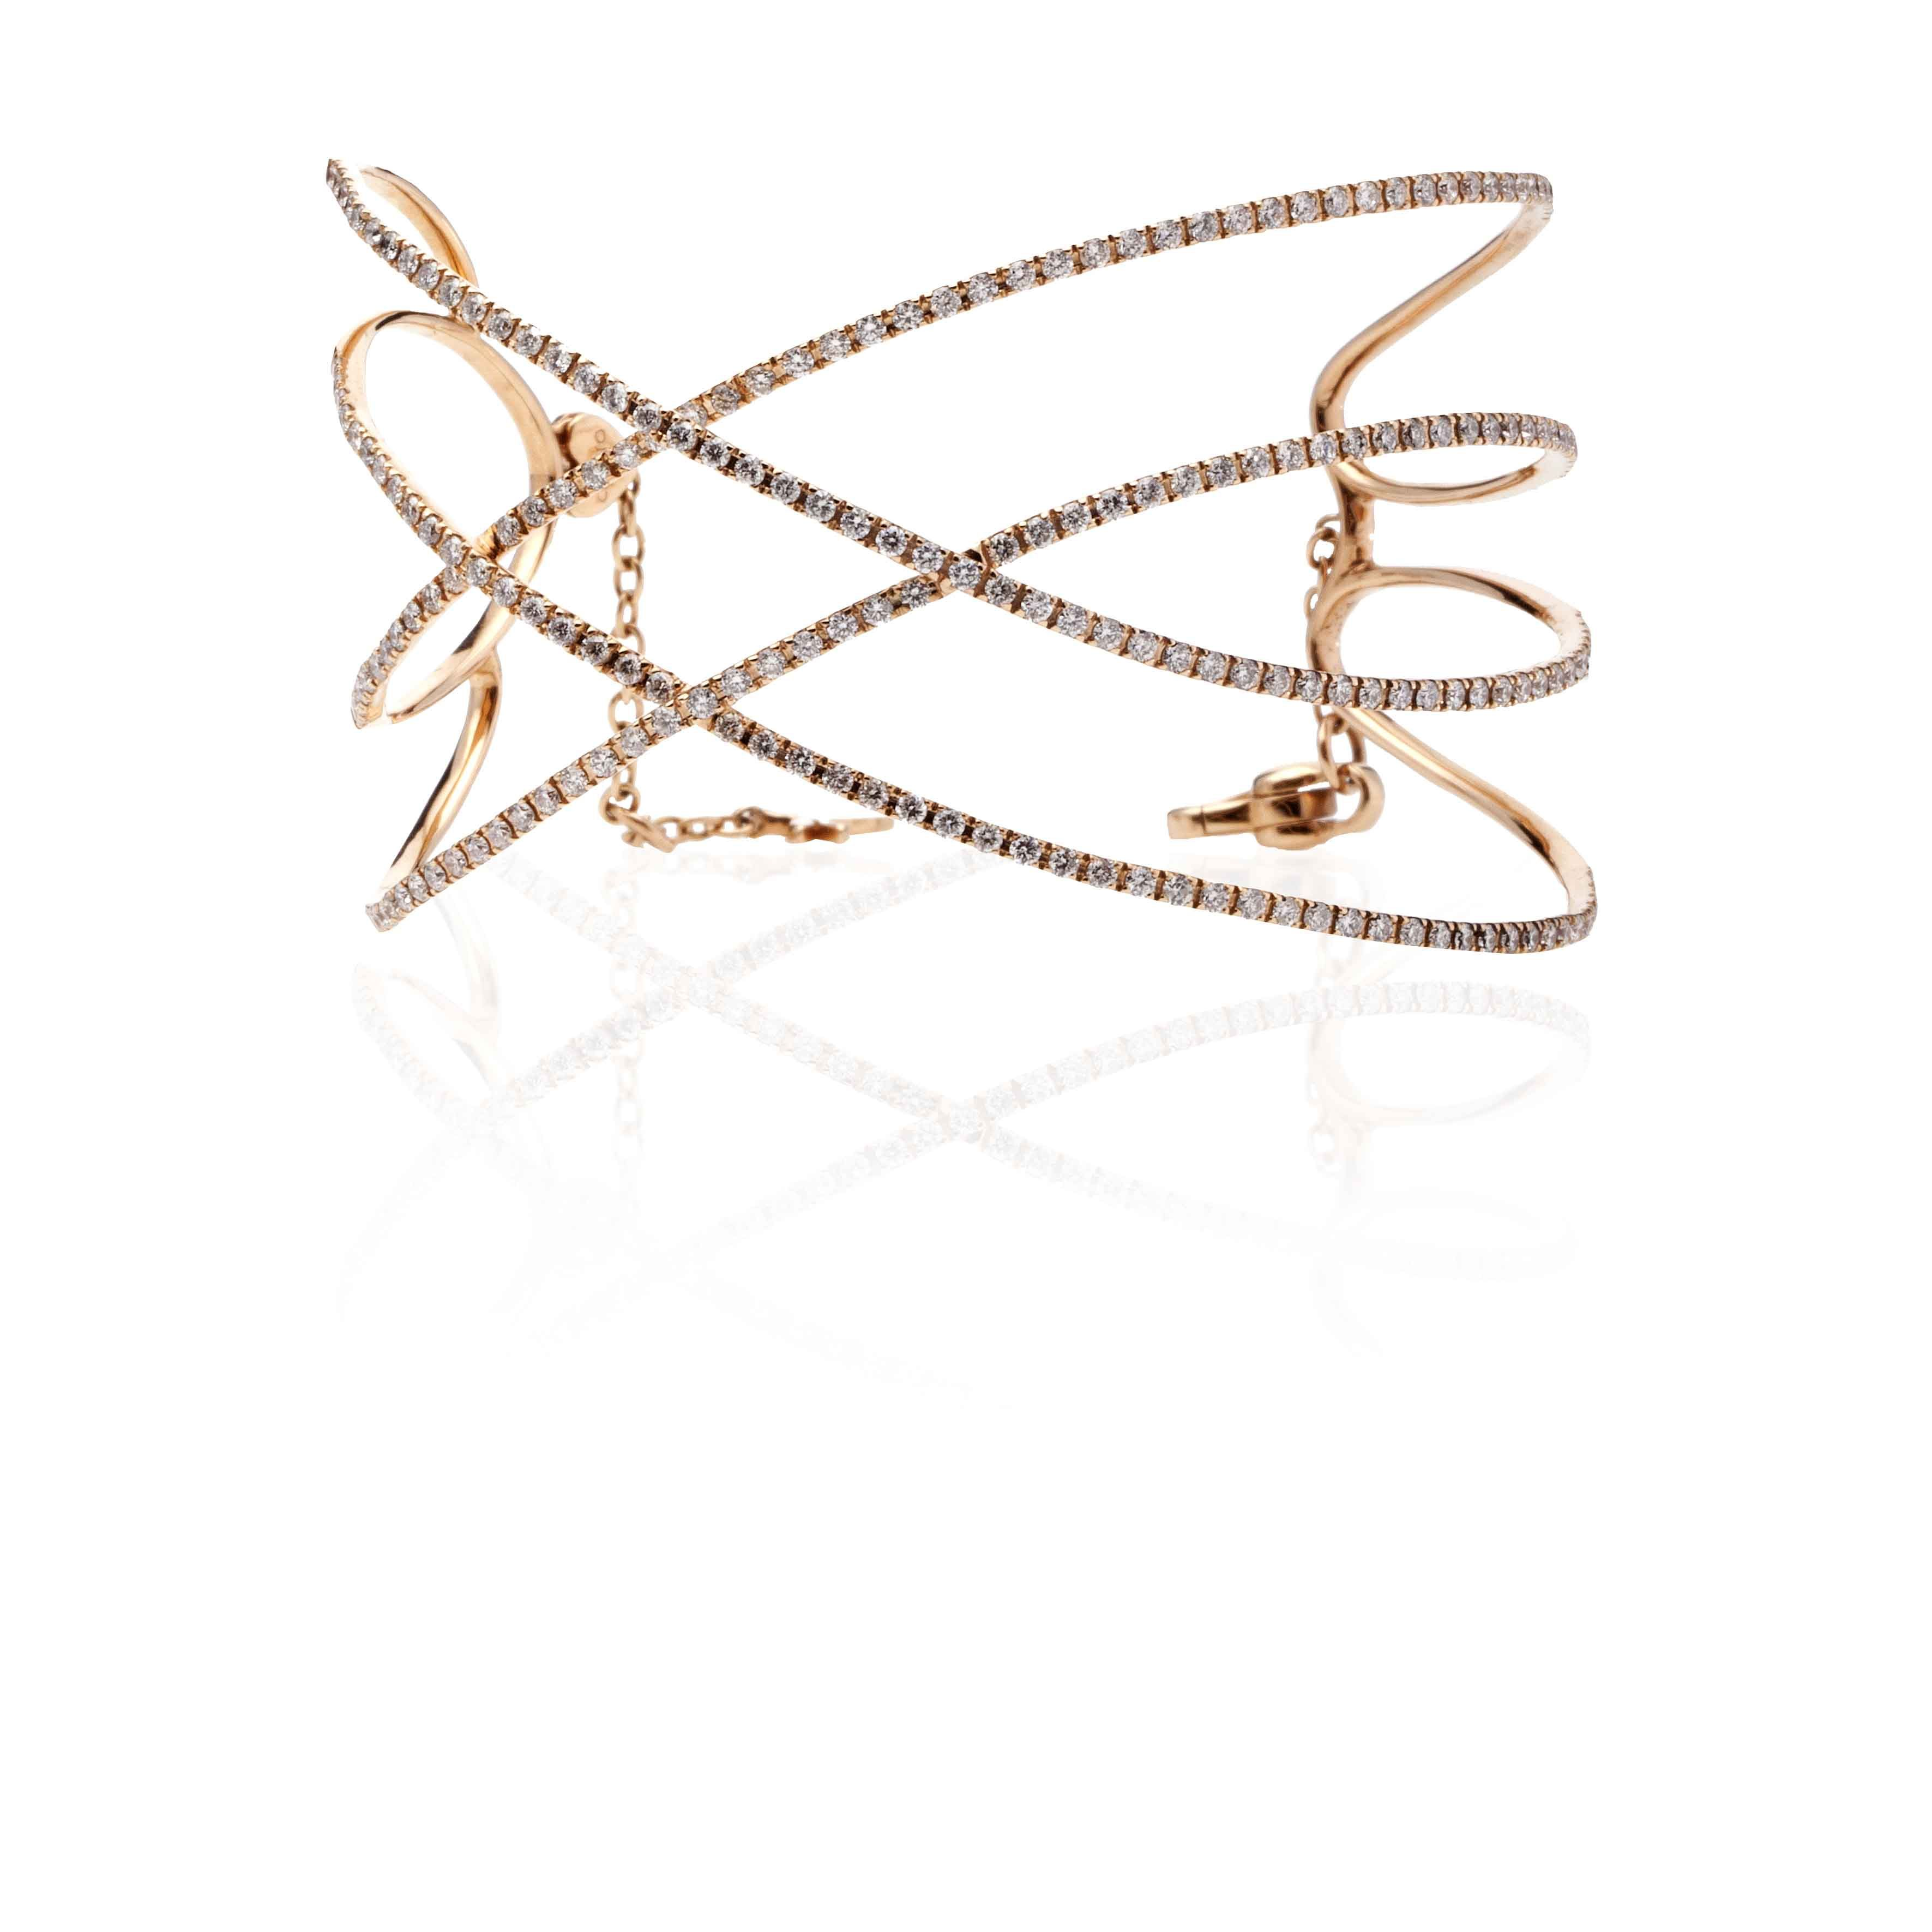 18 kt Rose Gold bracelet with Diamonds